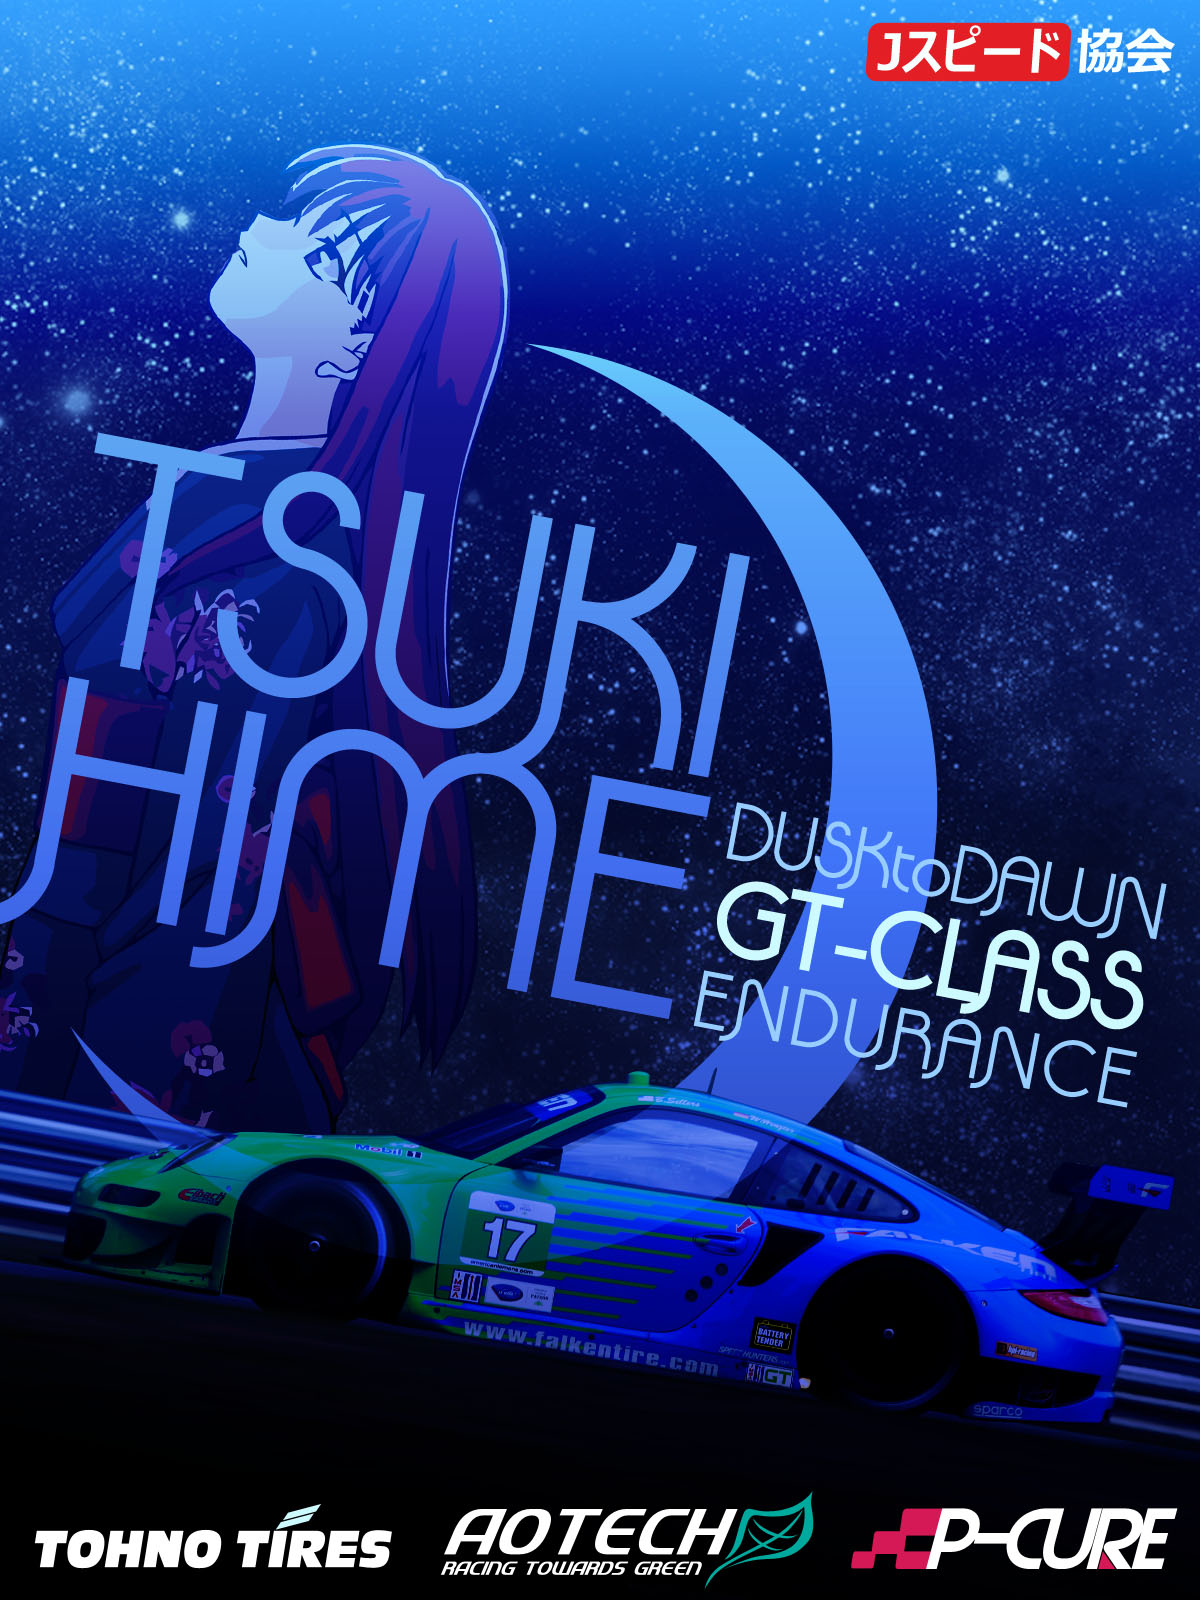 Tsukihime GT-Class Endurance Poster by GTRAtomixsearch